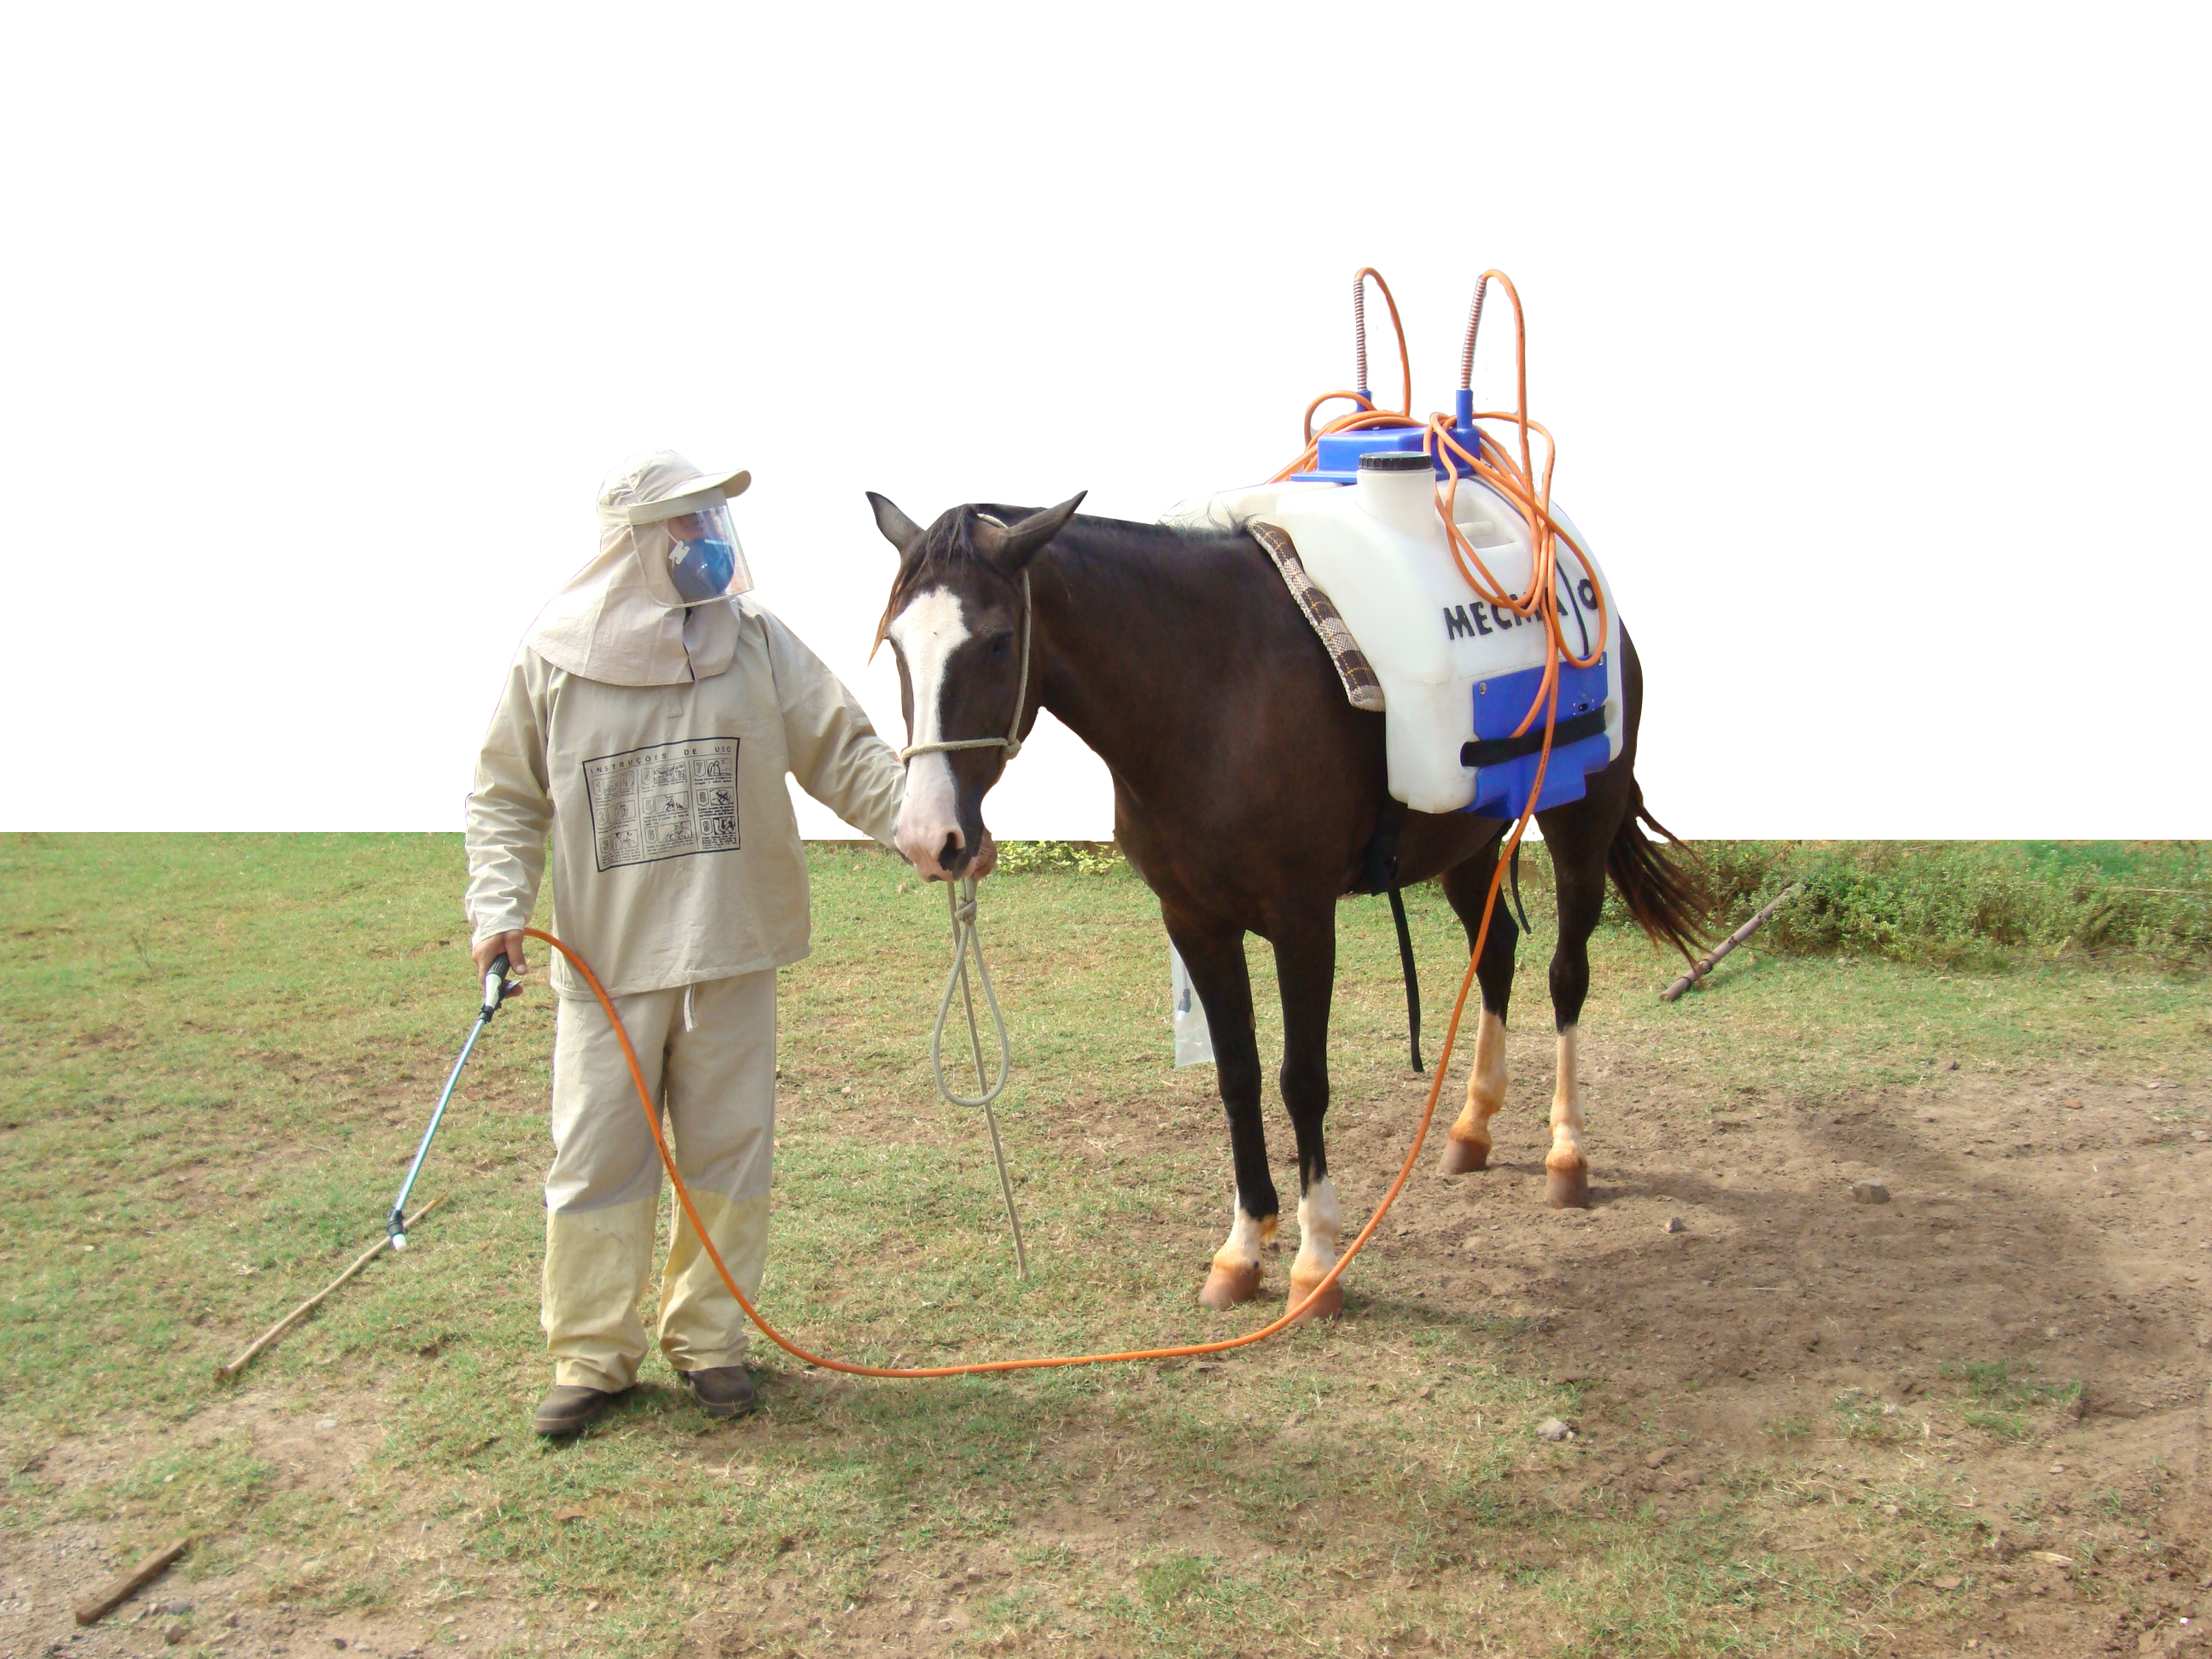 Horse Powered Sprayer